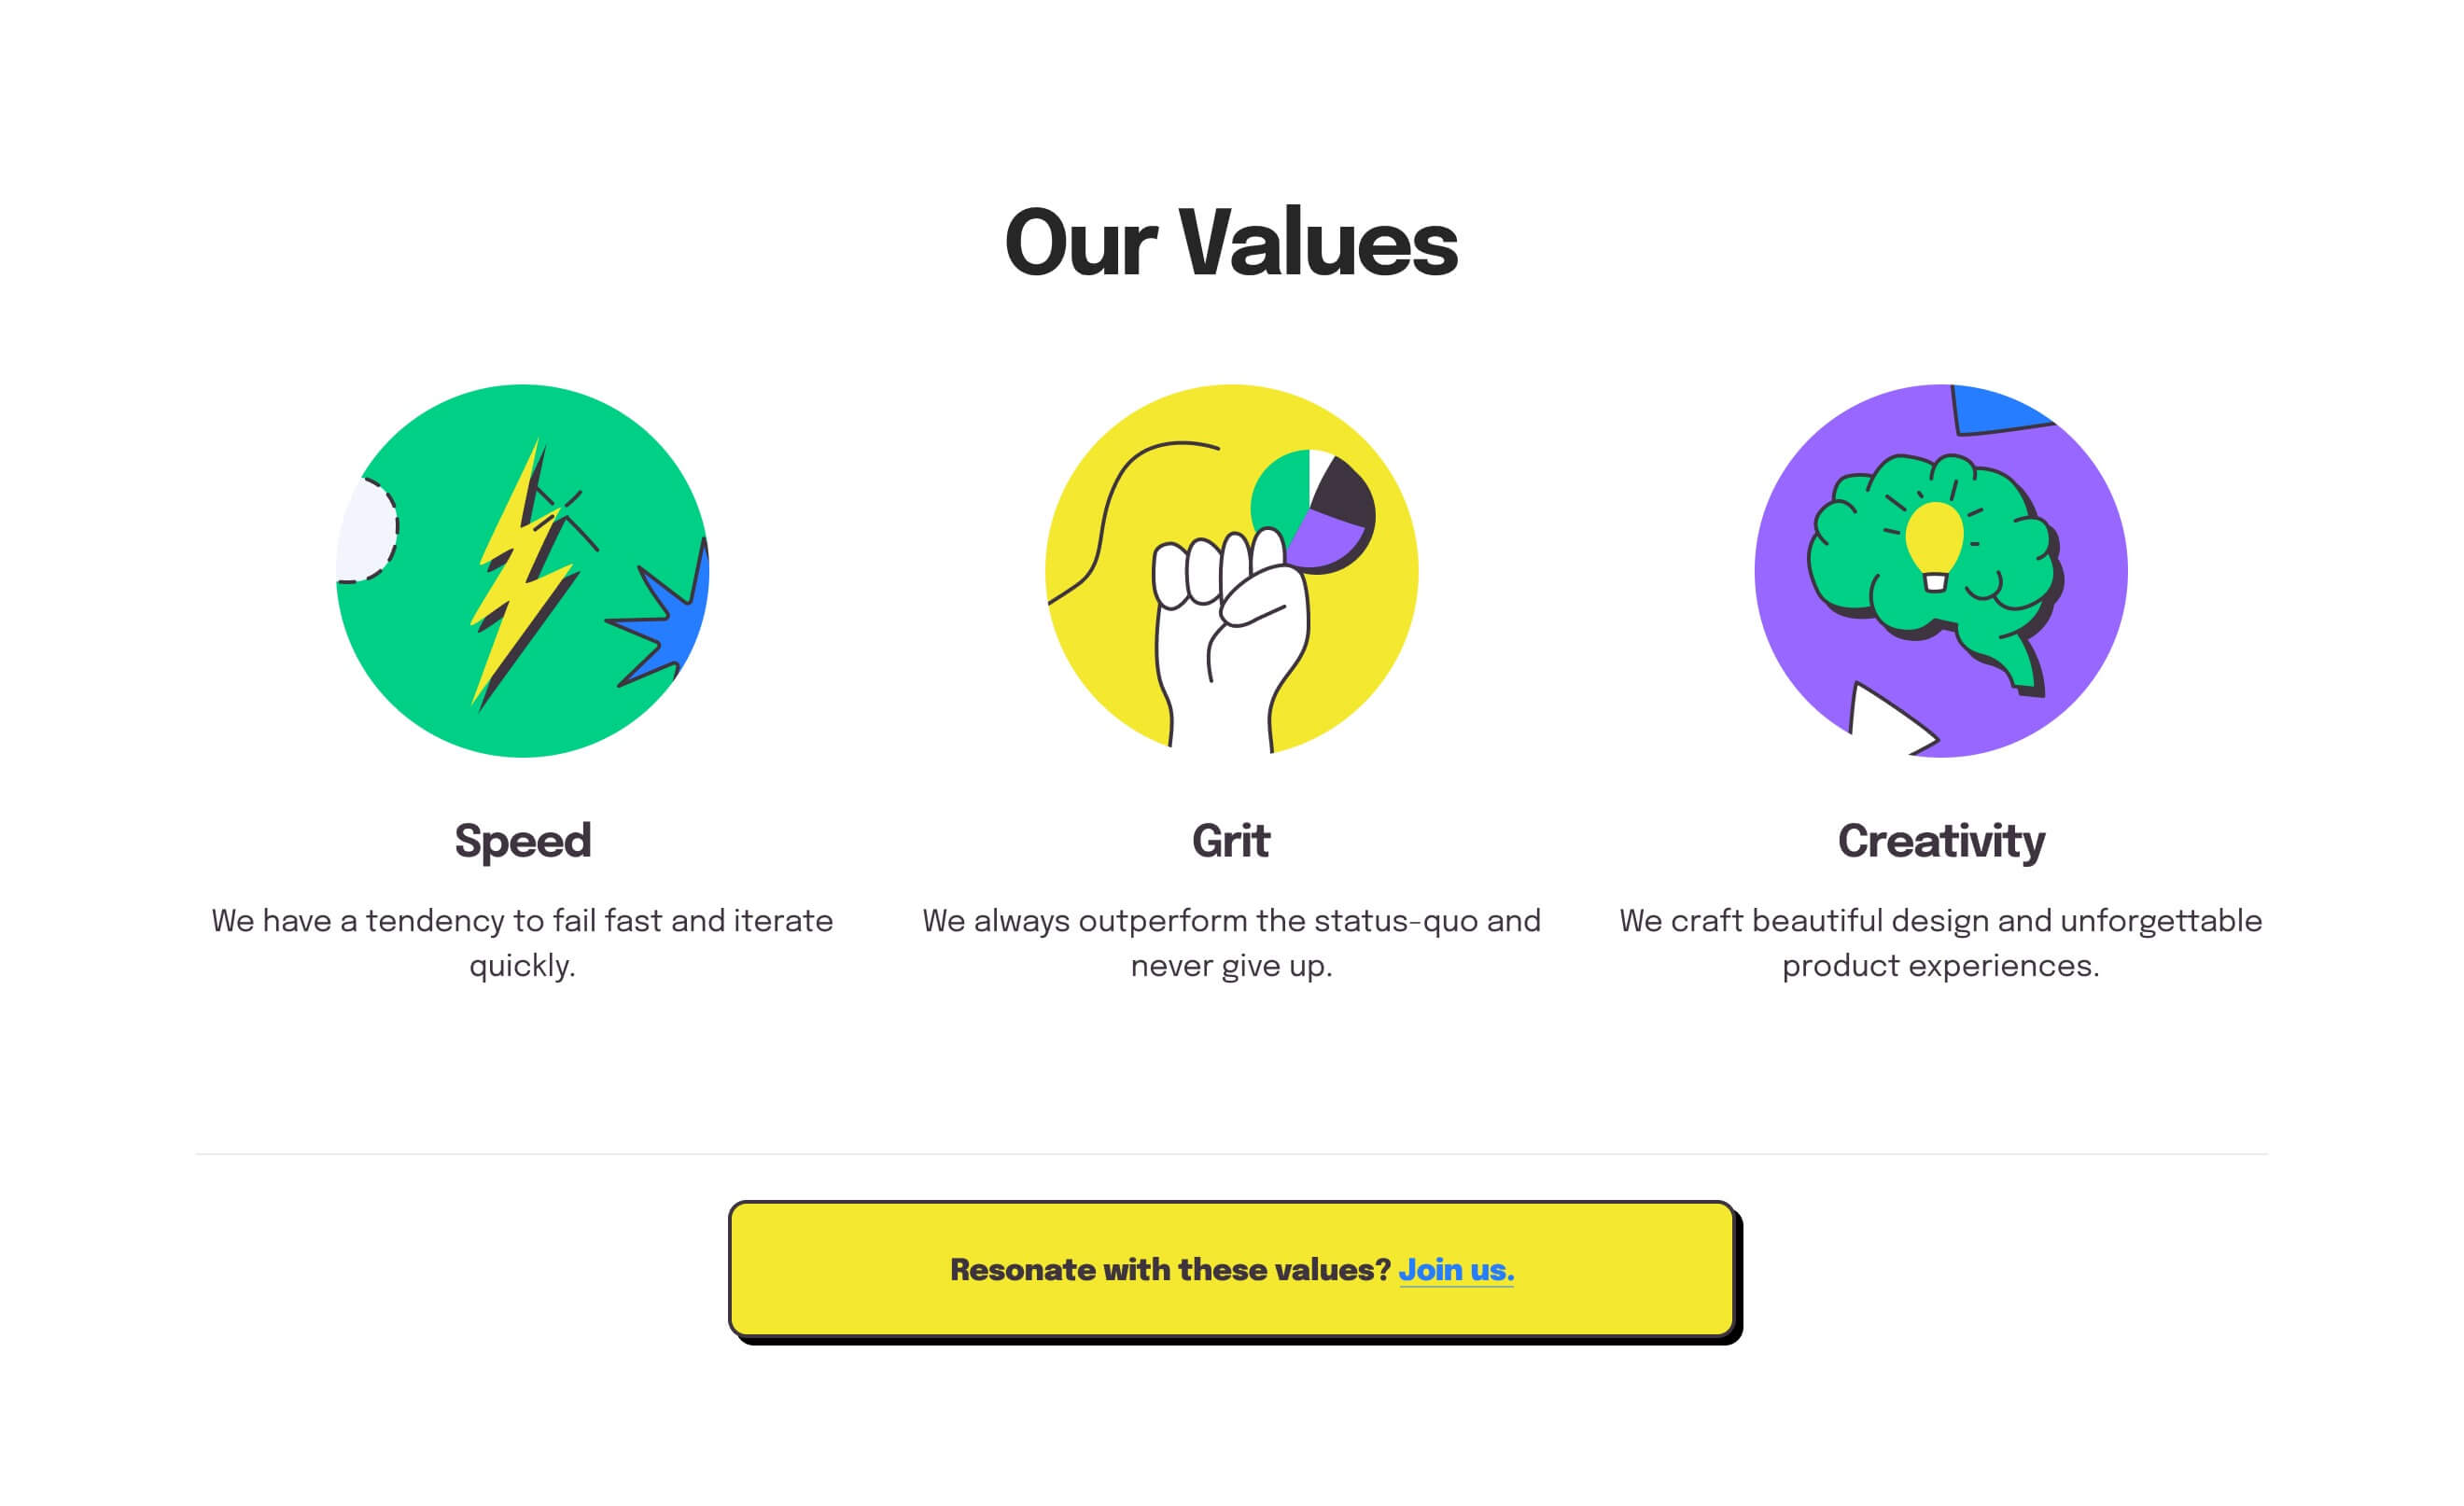 Values section